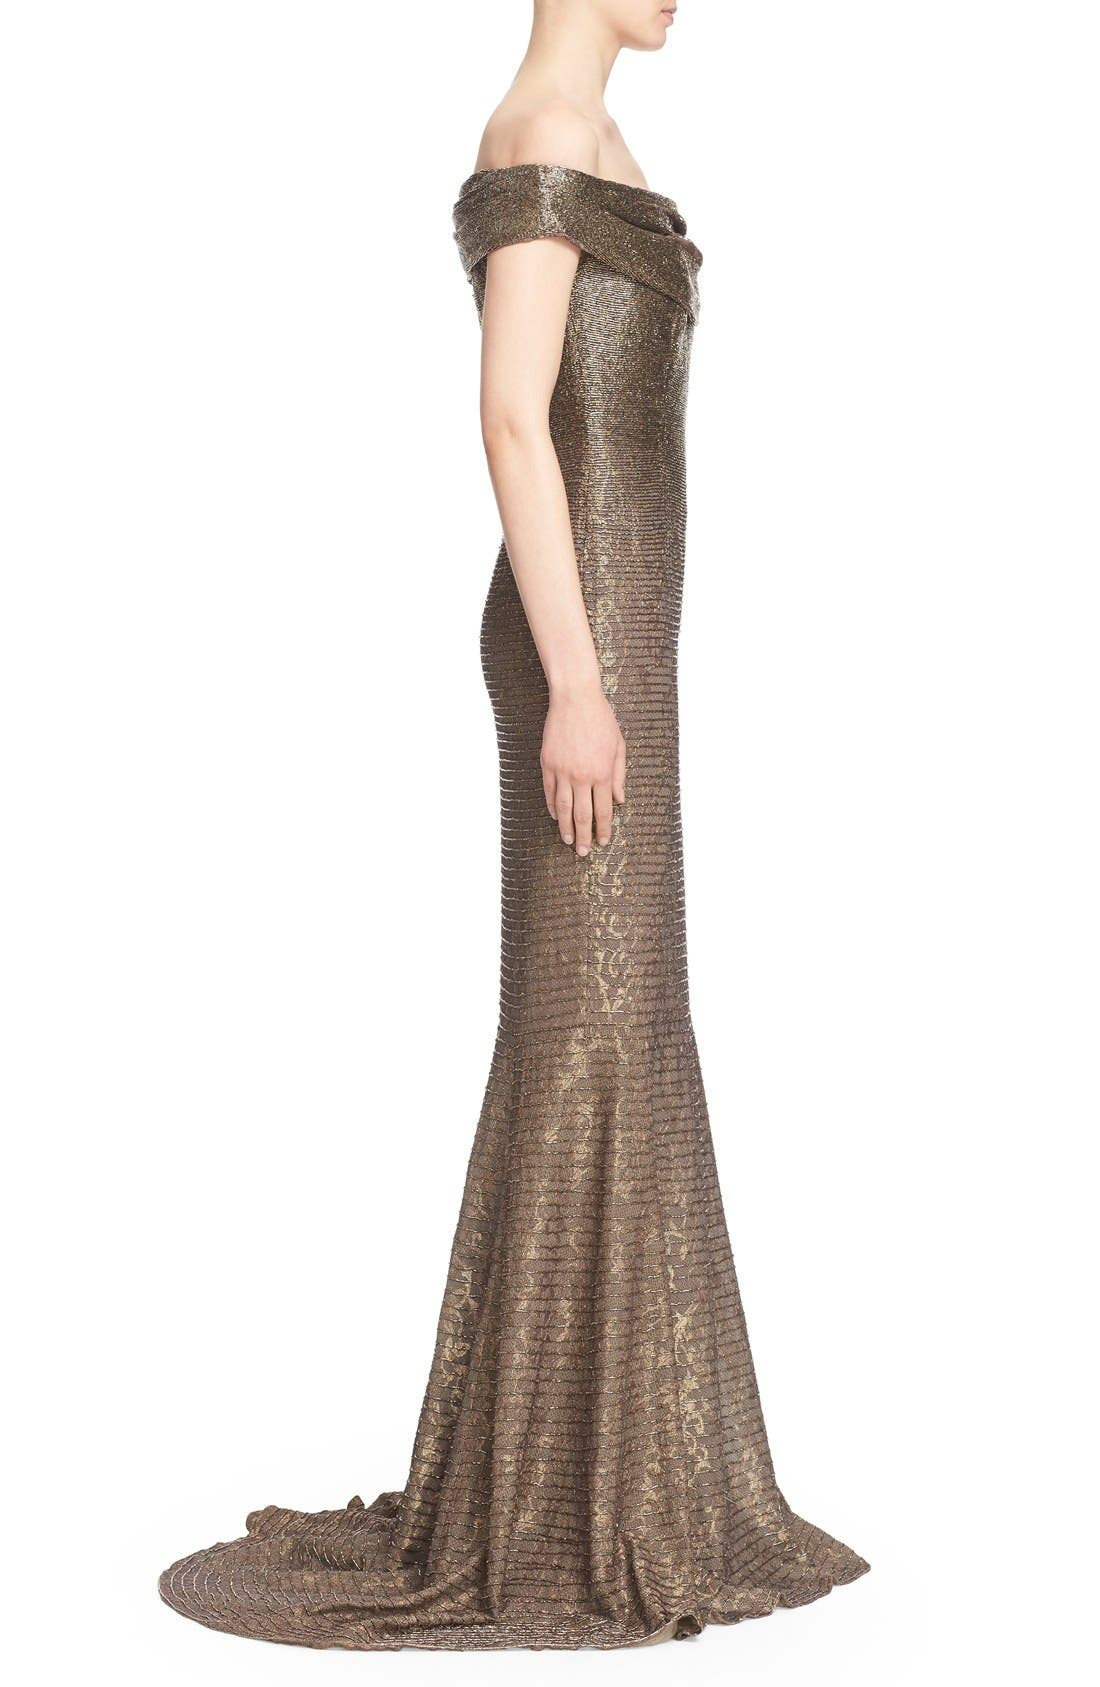 CARMEN MARC VALVO COUTURE,                             Beaded Off the Shoulder Lace Mermaid Gown,                             Alternate thumbnail 4, color,                             710